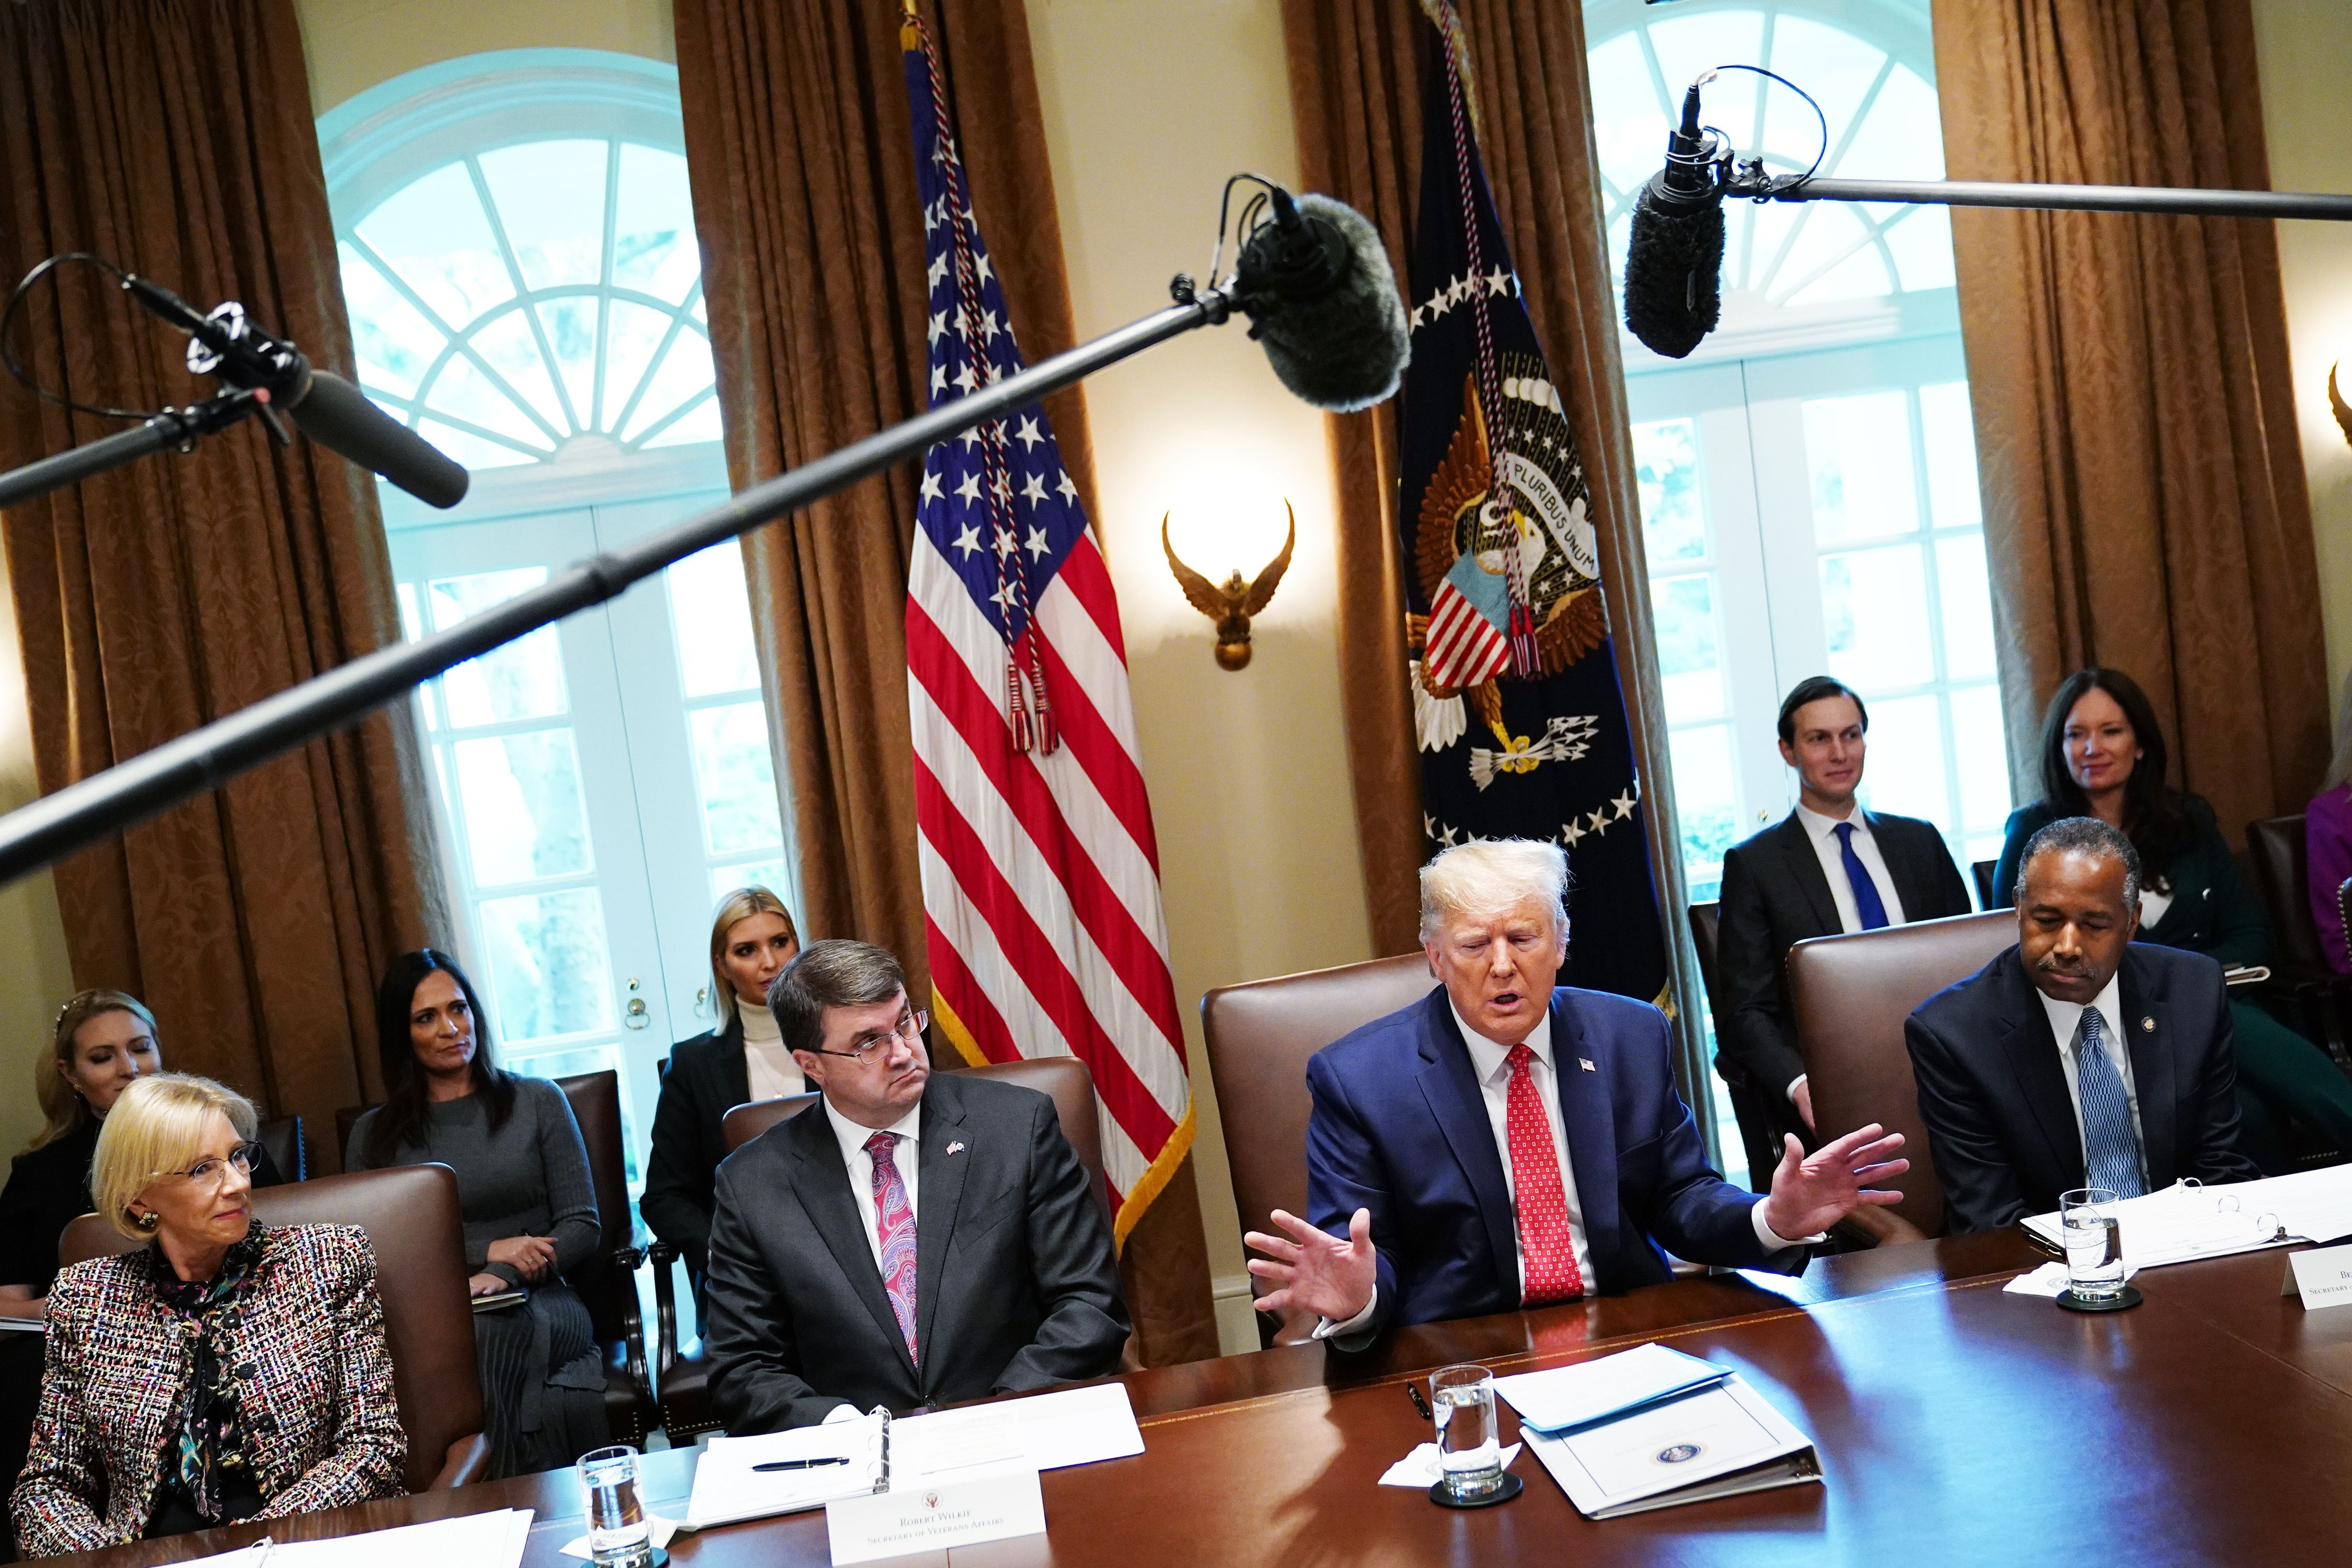 US President Donald Trump speak during a cabinet meeting in the Cabinet Room of the White House in Washington, DC on November 19, 2019, as (L-R) Education Secretary Betsy DeVos, Veterans Affairs Secretary Robert Wilkie, and Secretary of Housing and Urban Development Ben Carson listen. (Photo by MANDEL NGAN/AFP via Getty Images)